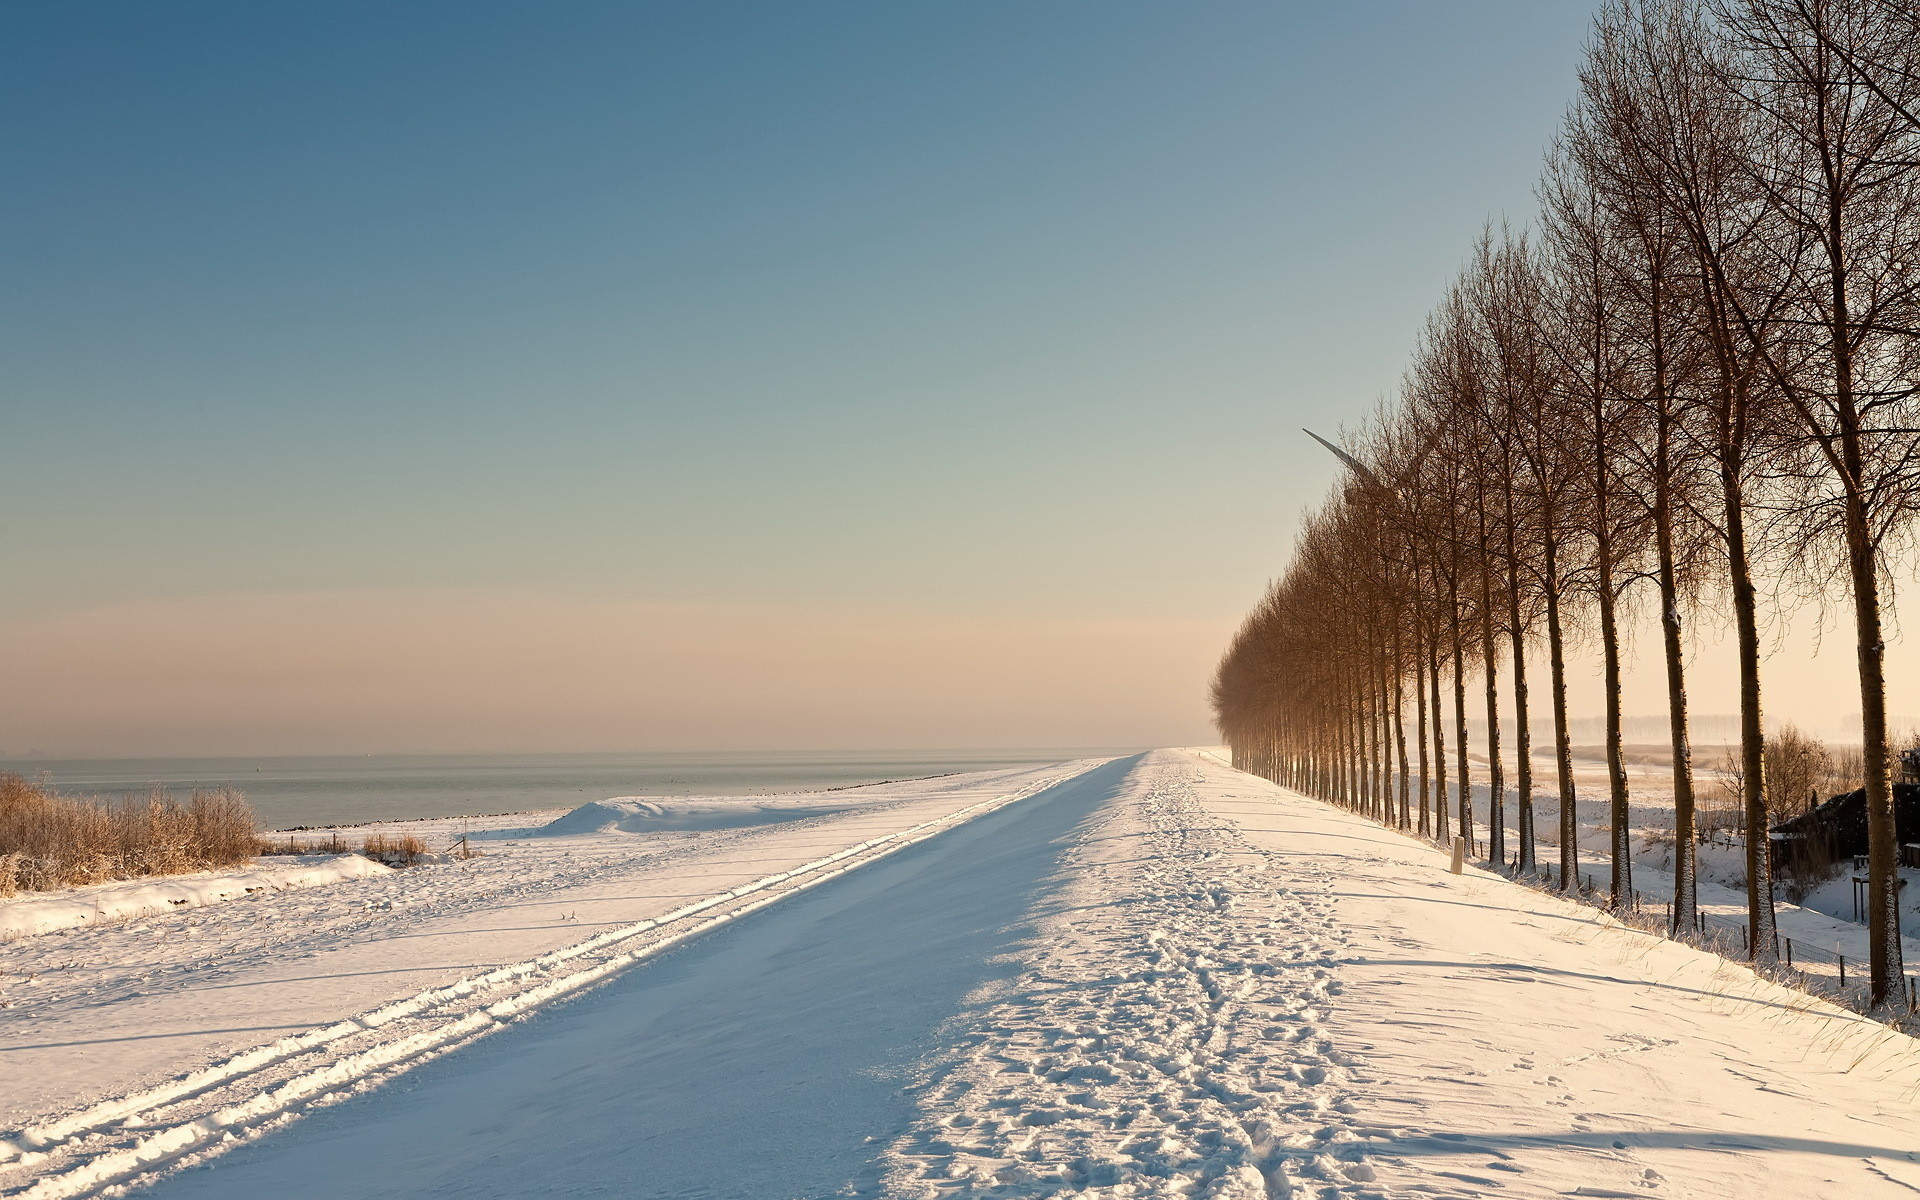 Download mobile wallpaper Landscape, Winter, Trees, Roads, Snow for free.